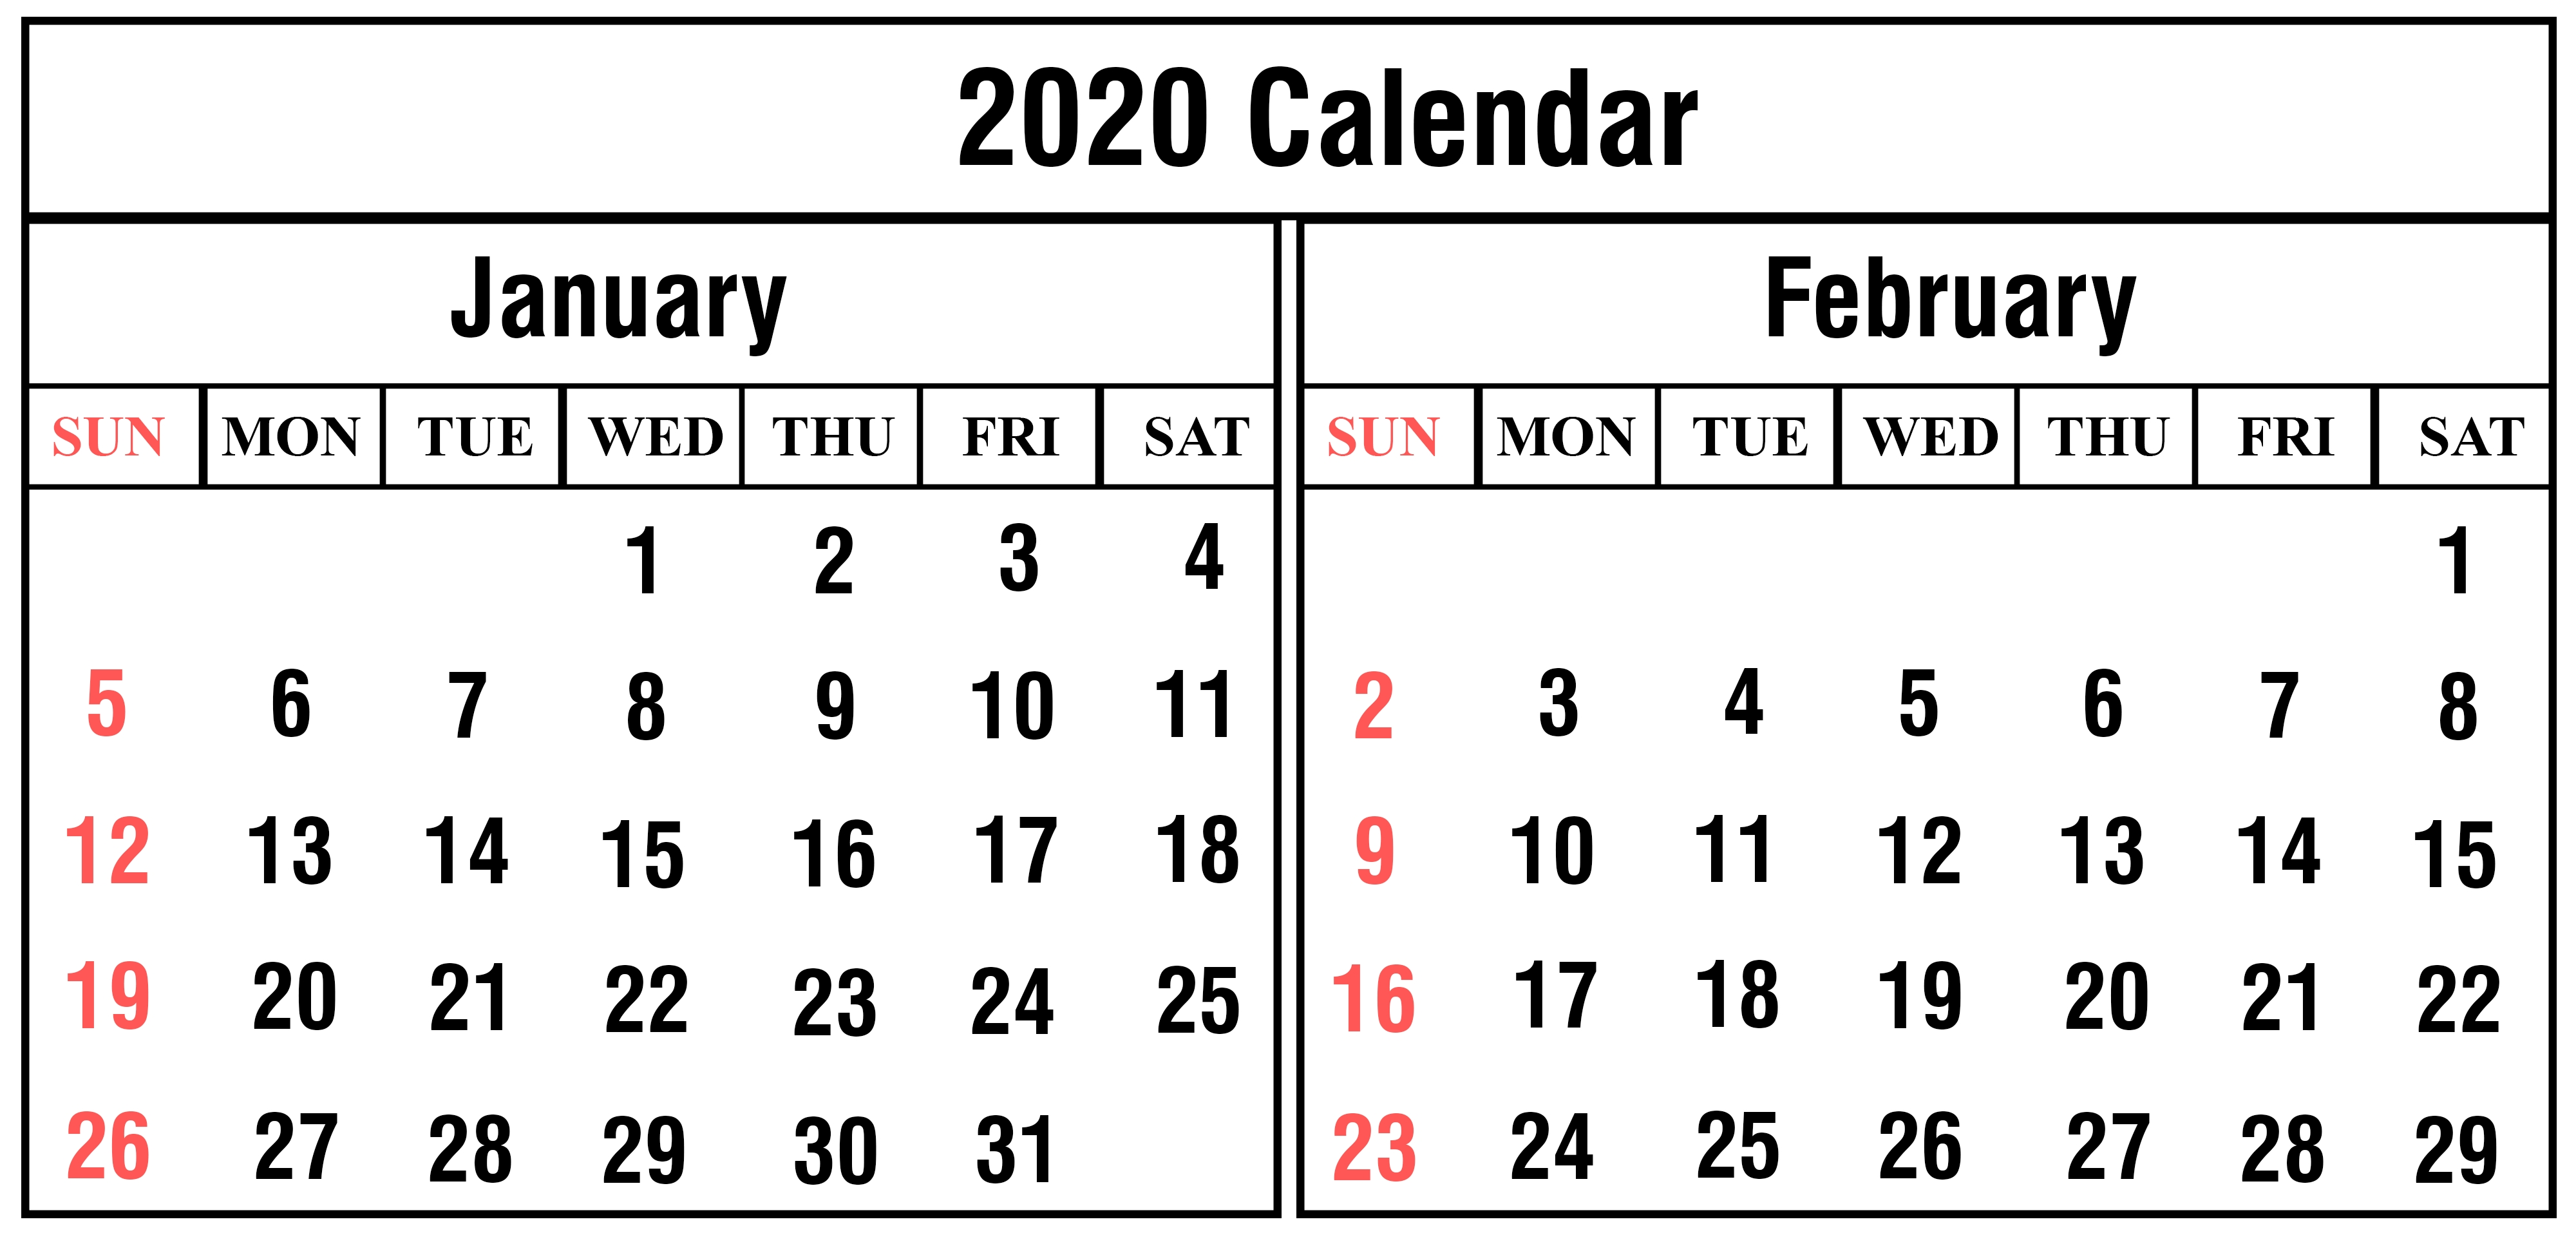 Free January And February 2020 Calendar Templates-January February 2020 Calendar